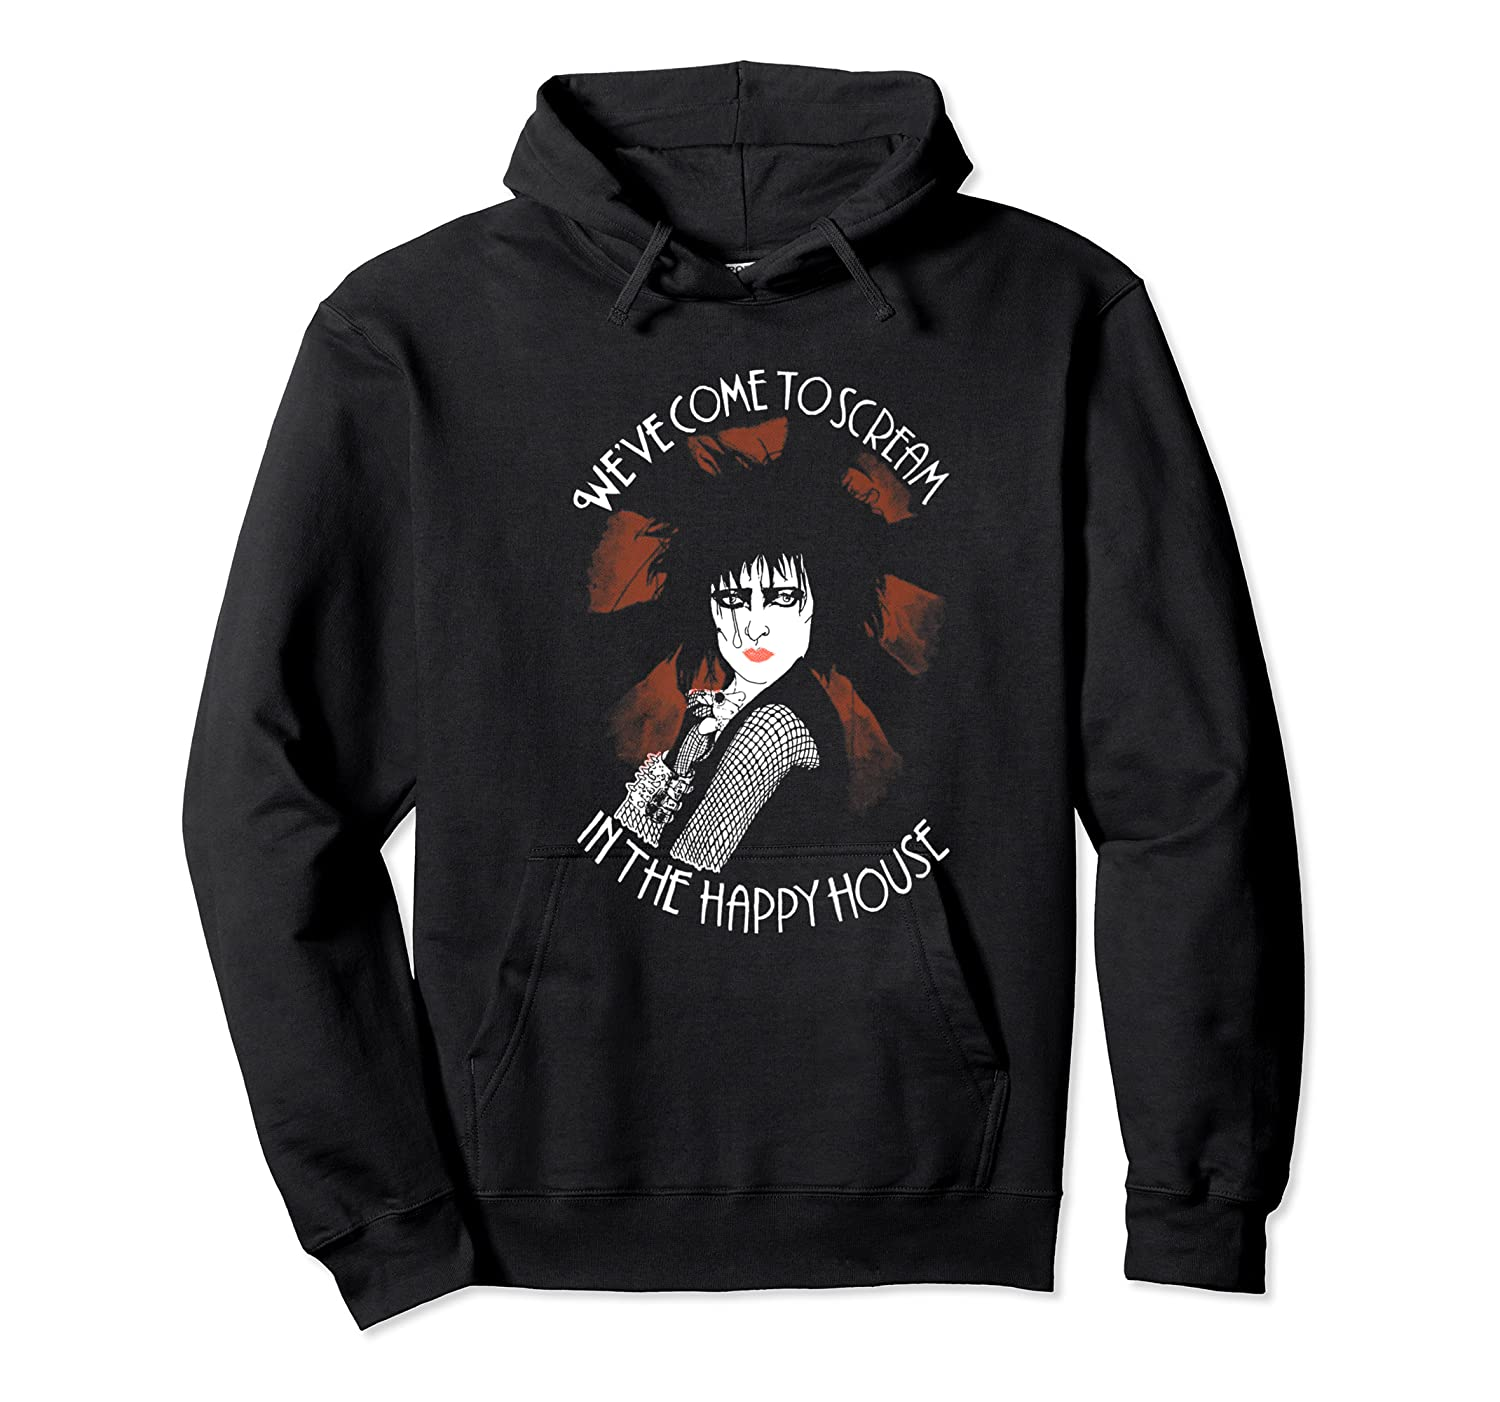 Siouxsie Sioux We Ve Come To Scream In The Happy House Shirts Unisex Pullover Hoodie